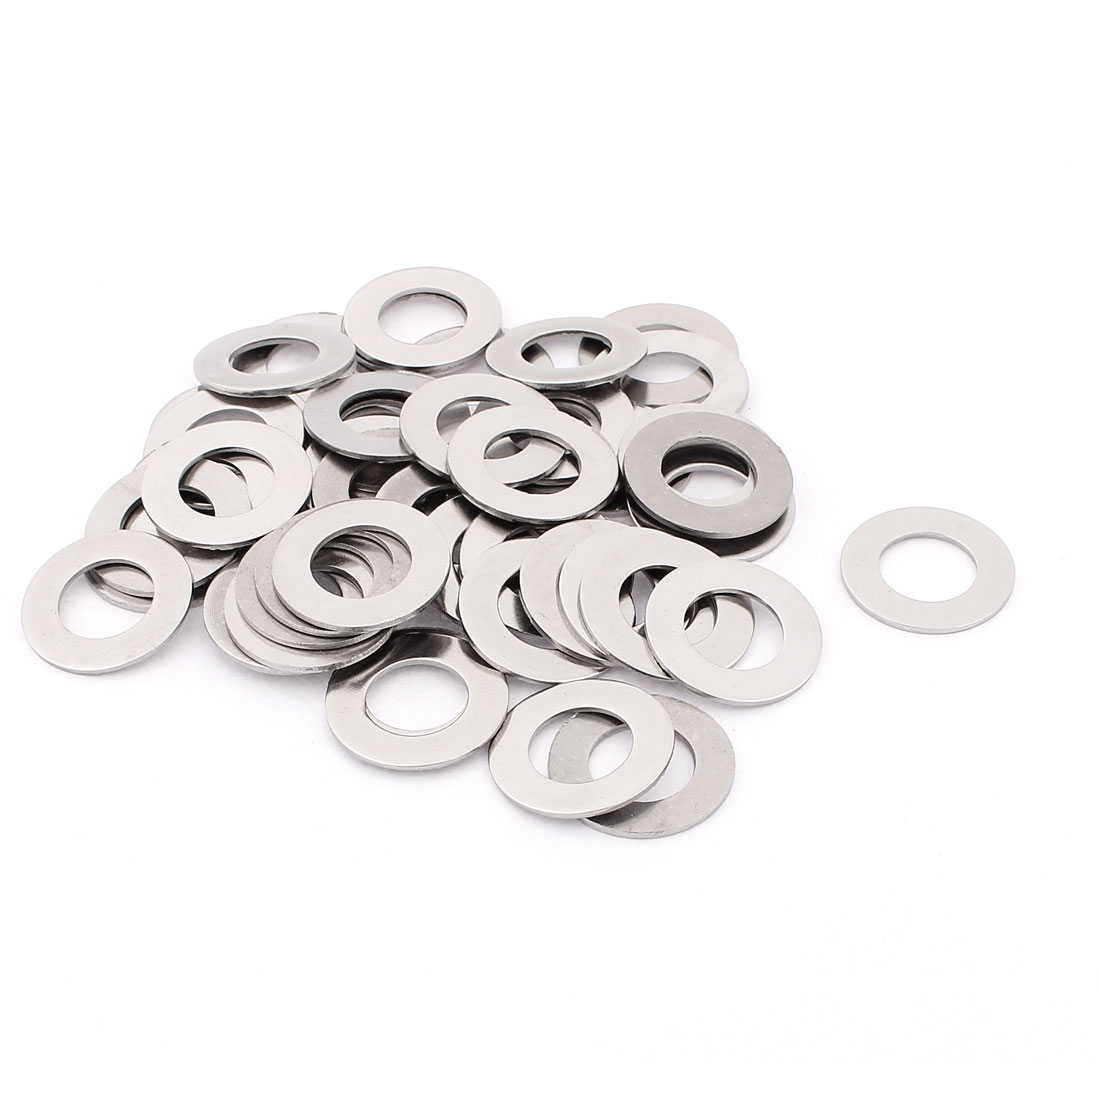 50 Pcs 304 Stainless Steel Flat Washer M16 x 29mm x 1.5mm for Screws Bolts